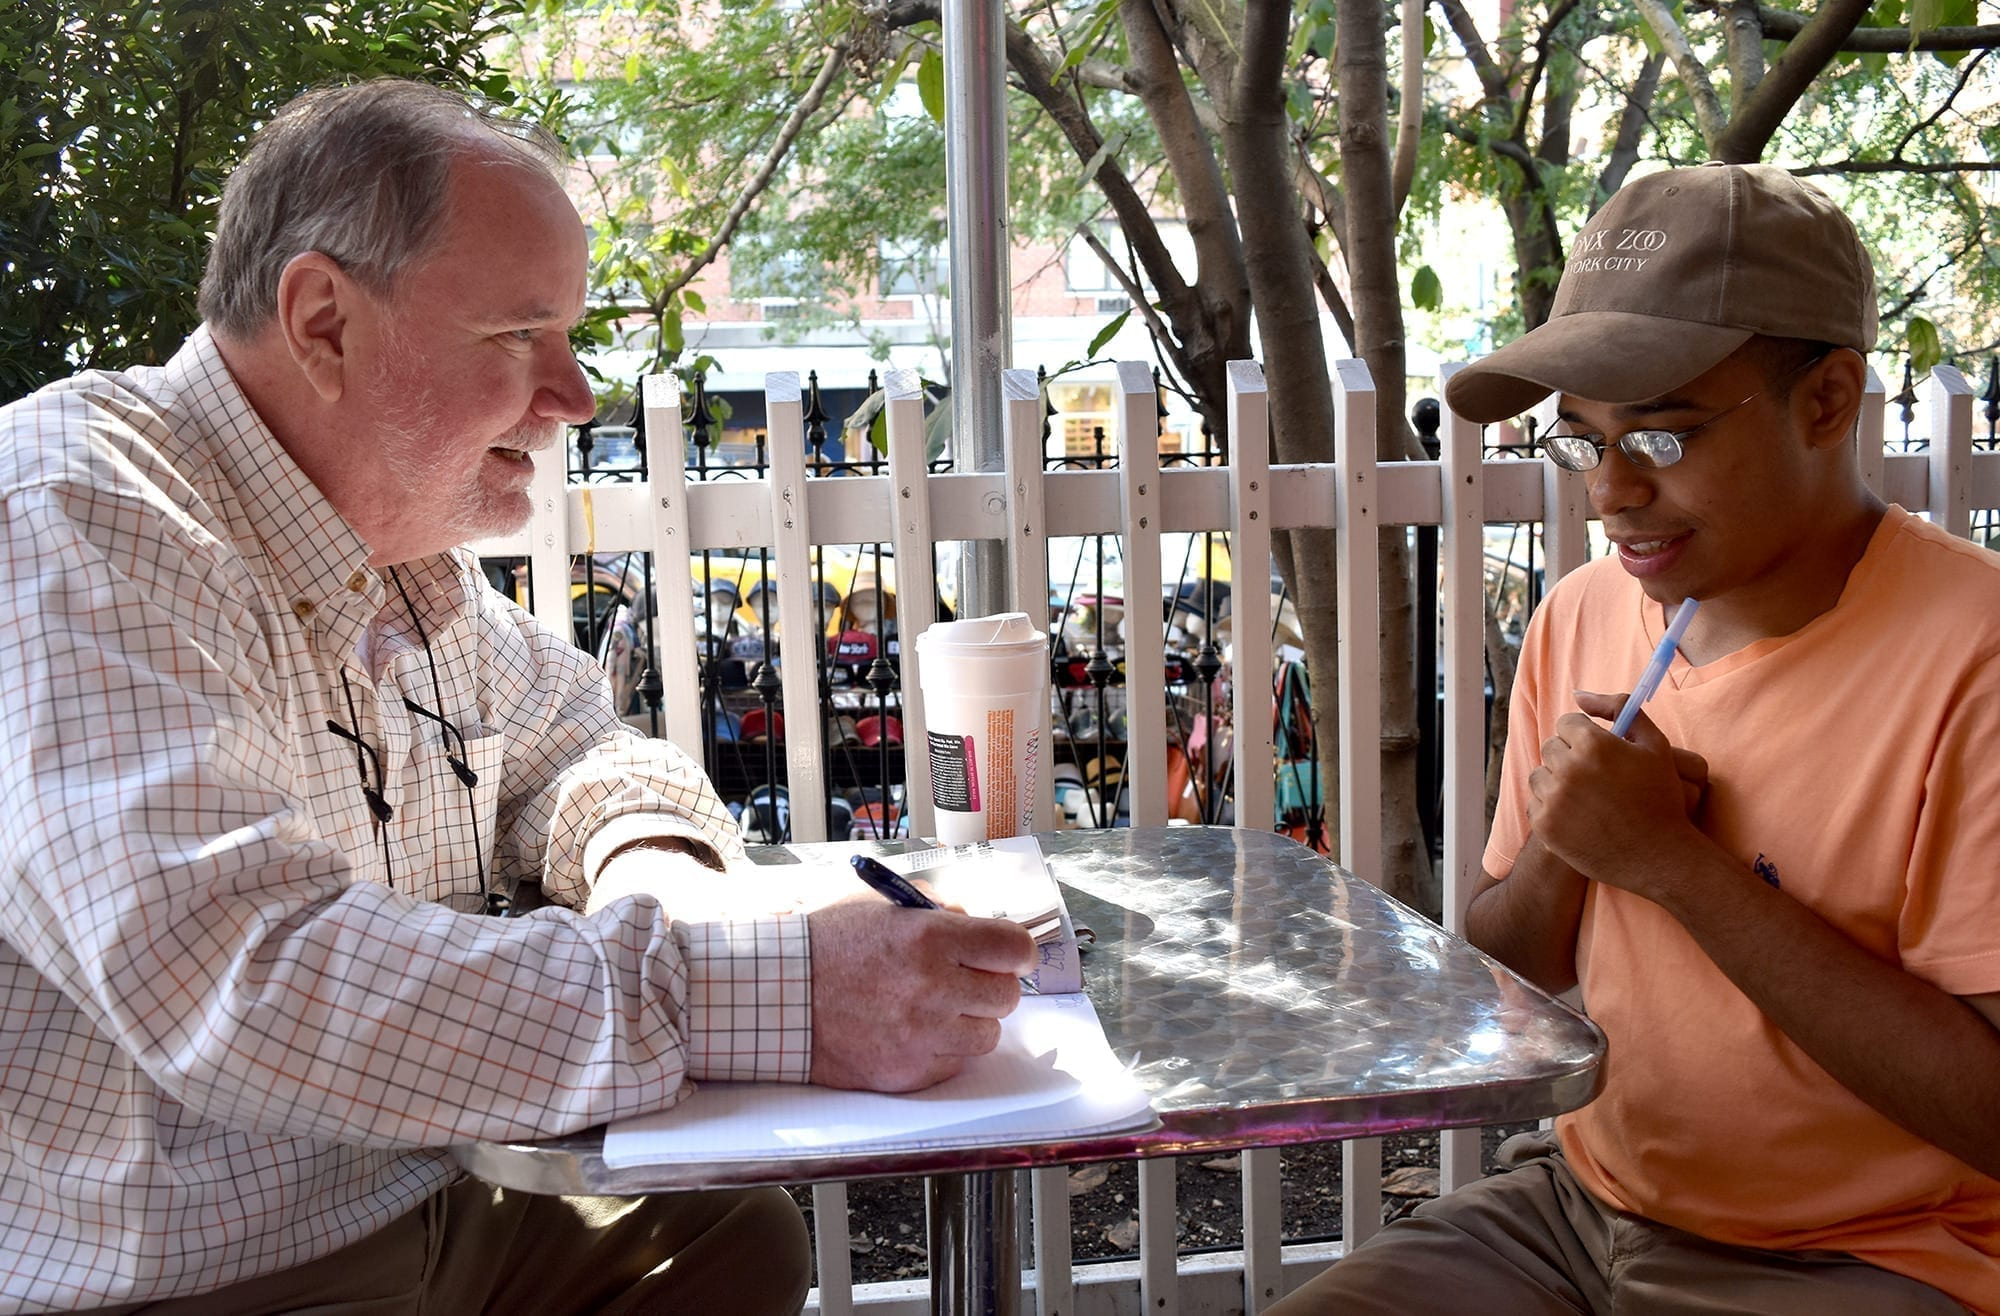 Peter Doherty prepares questions for Brandon McElroy, about the day's reading selection